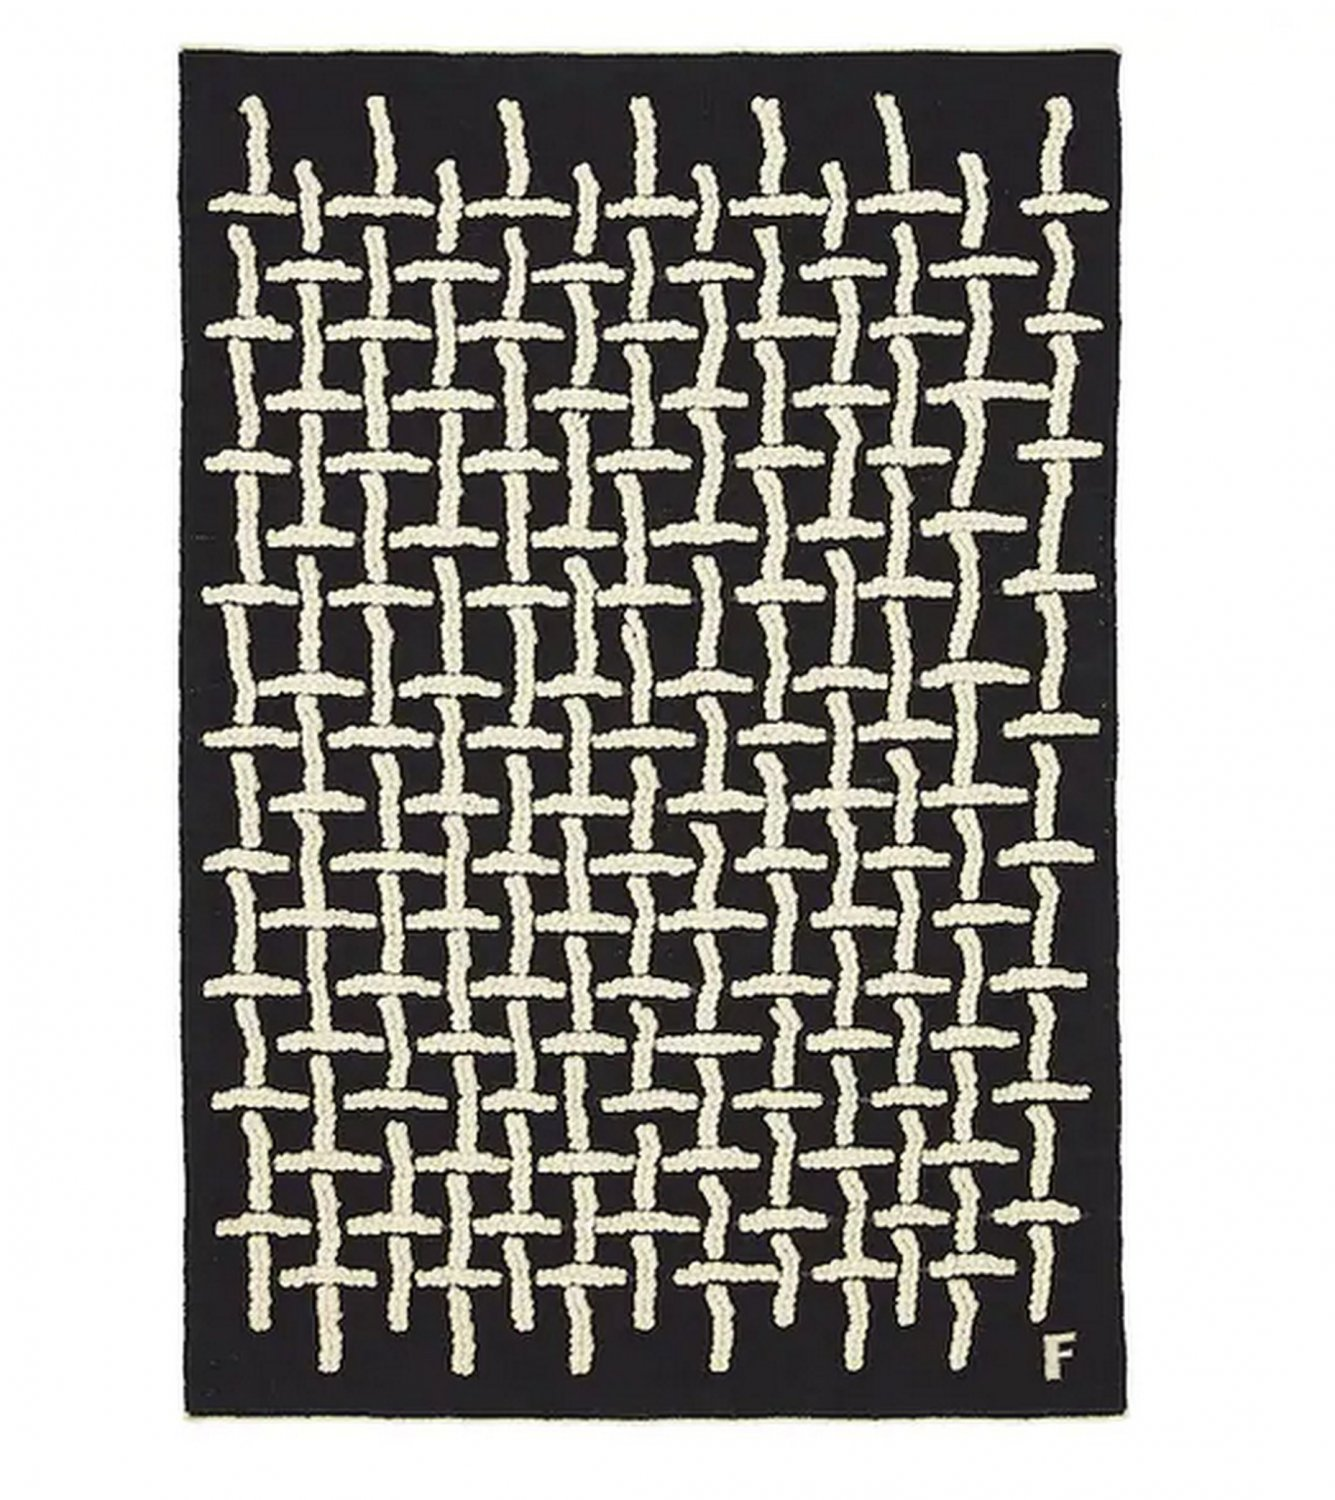 "IKEA Art Event 2019 RUG Filip Pagowski Limited Edition Black Wool Hand-Woven Textile Art 4'4""x6'5"""